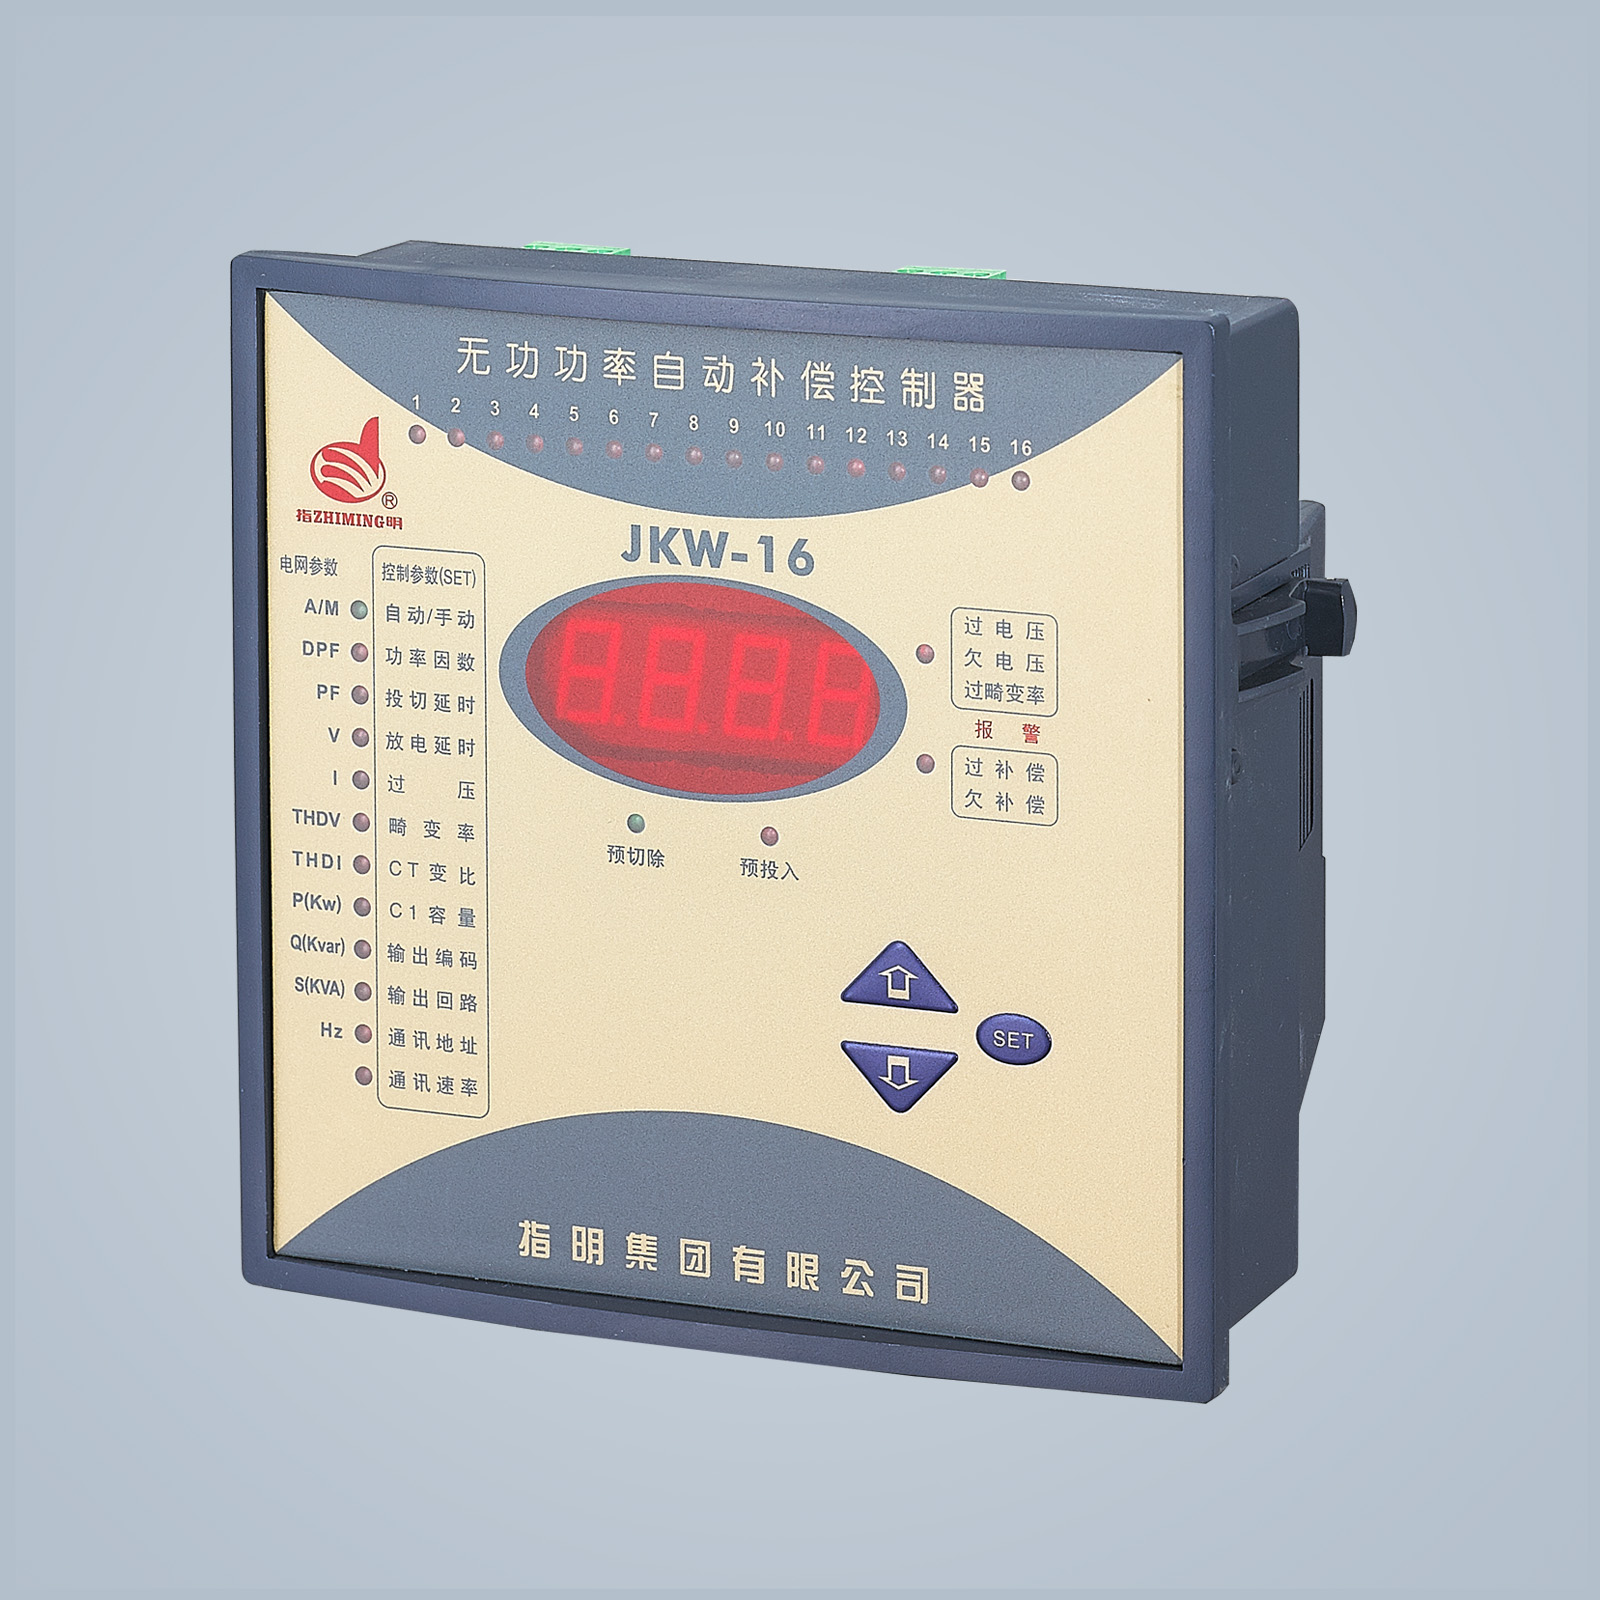 JKW-16 Series Reactive power auto-compen sation controller